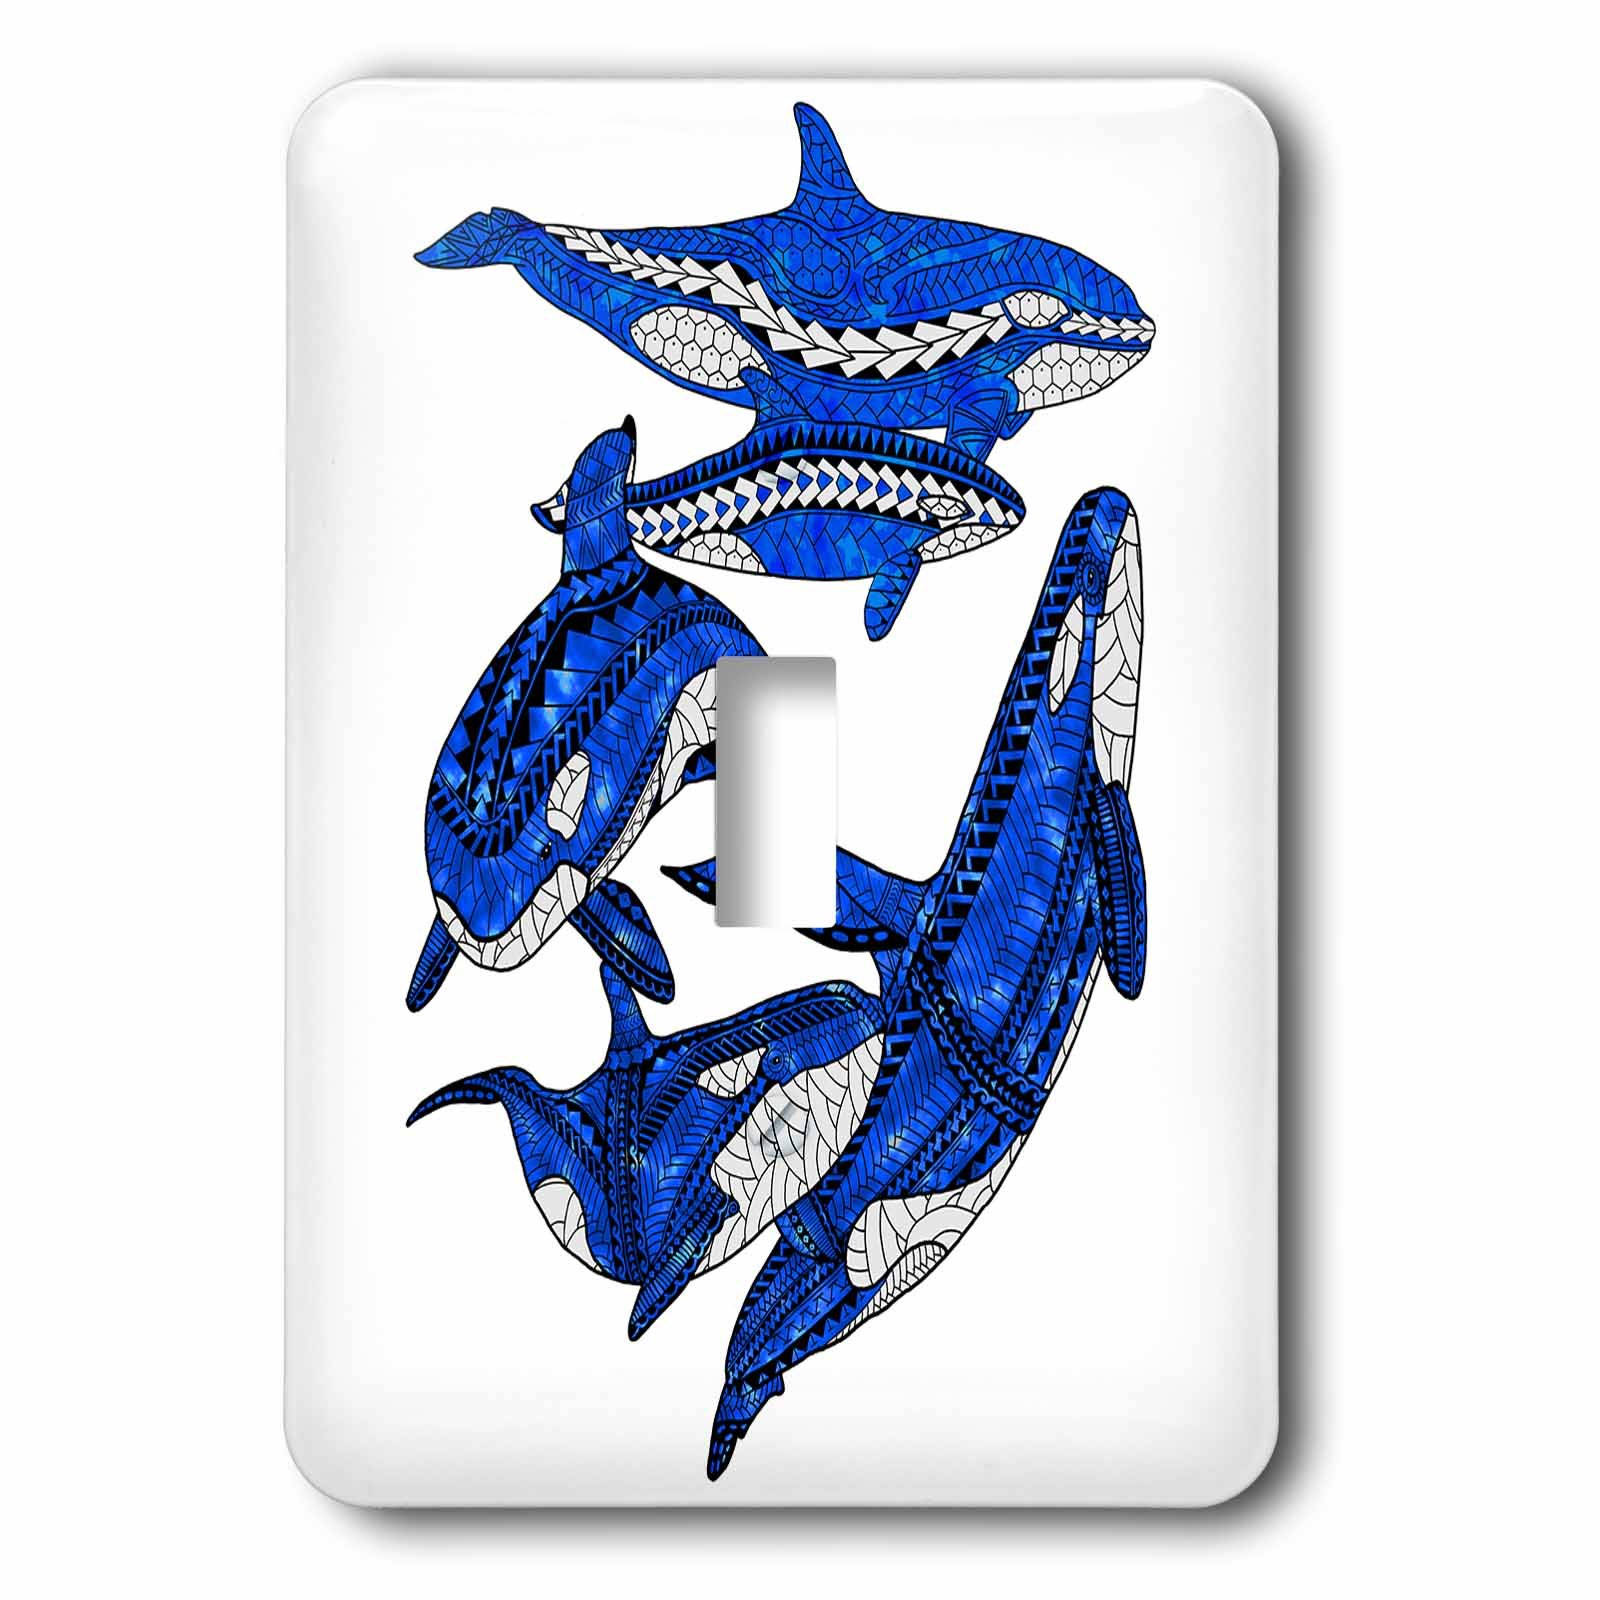 3dRose MacDonald Creative Studios – Marine Animals - A pod of tribal orca killer whales - Light Switch Covers - single toggle switch (lsp_281507_1)